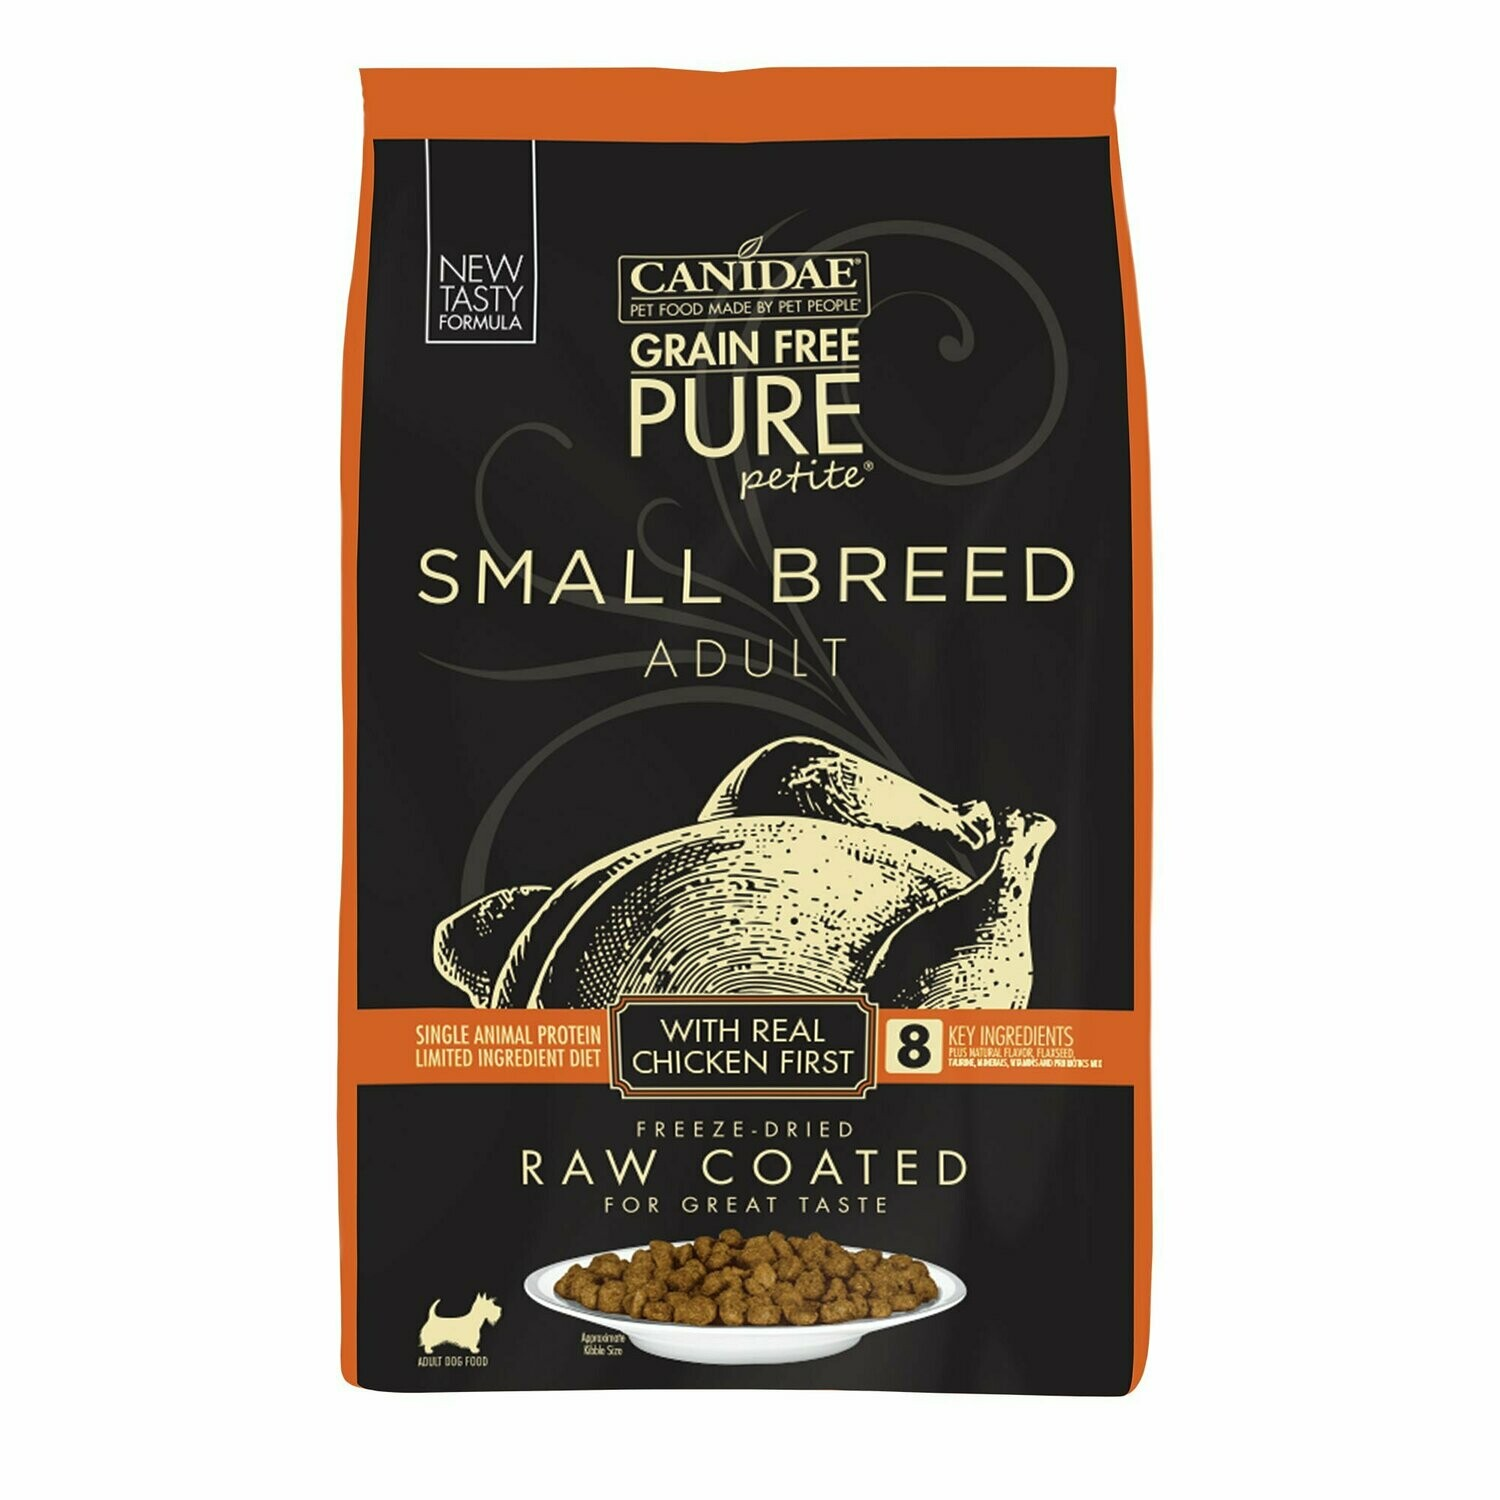 Canidae-Pure-Canidae Pure Petite Small Breed Adult Dog Food- Fresh Chicken 10 Lb